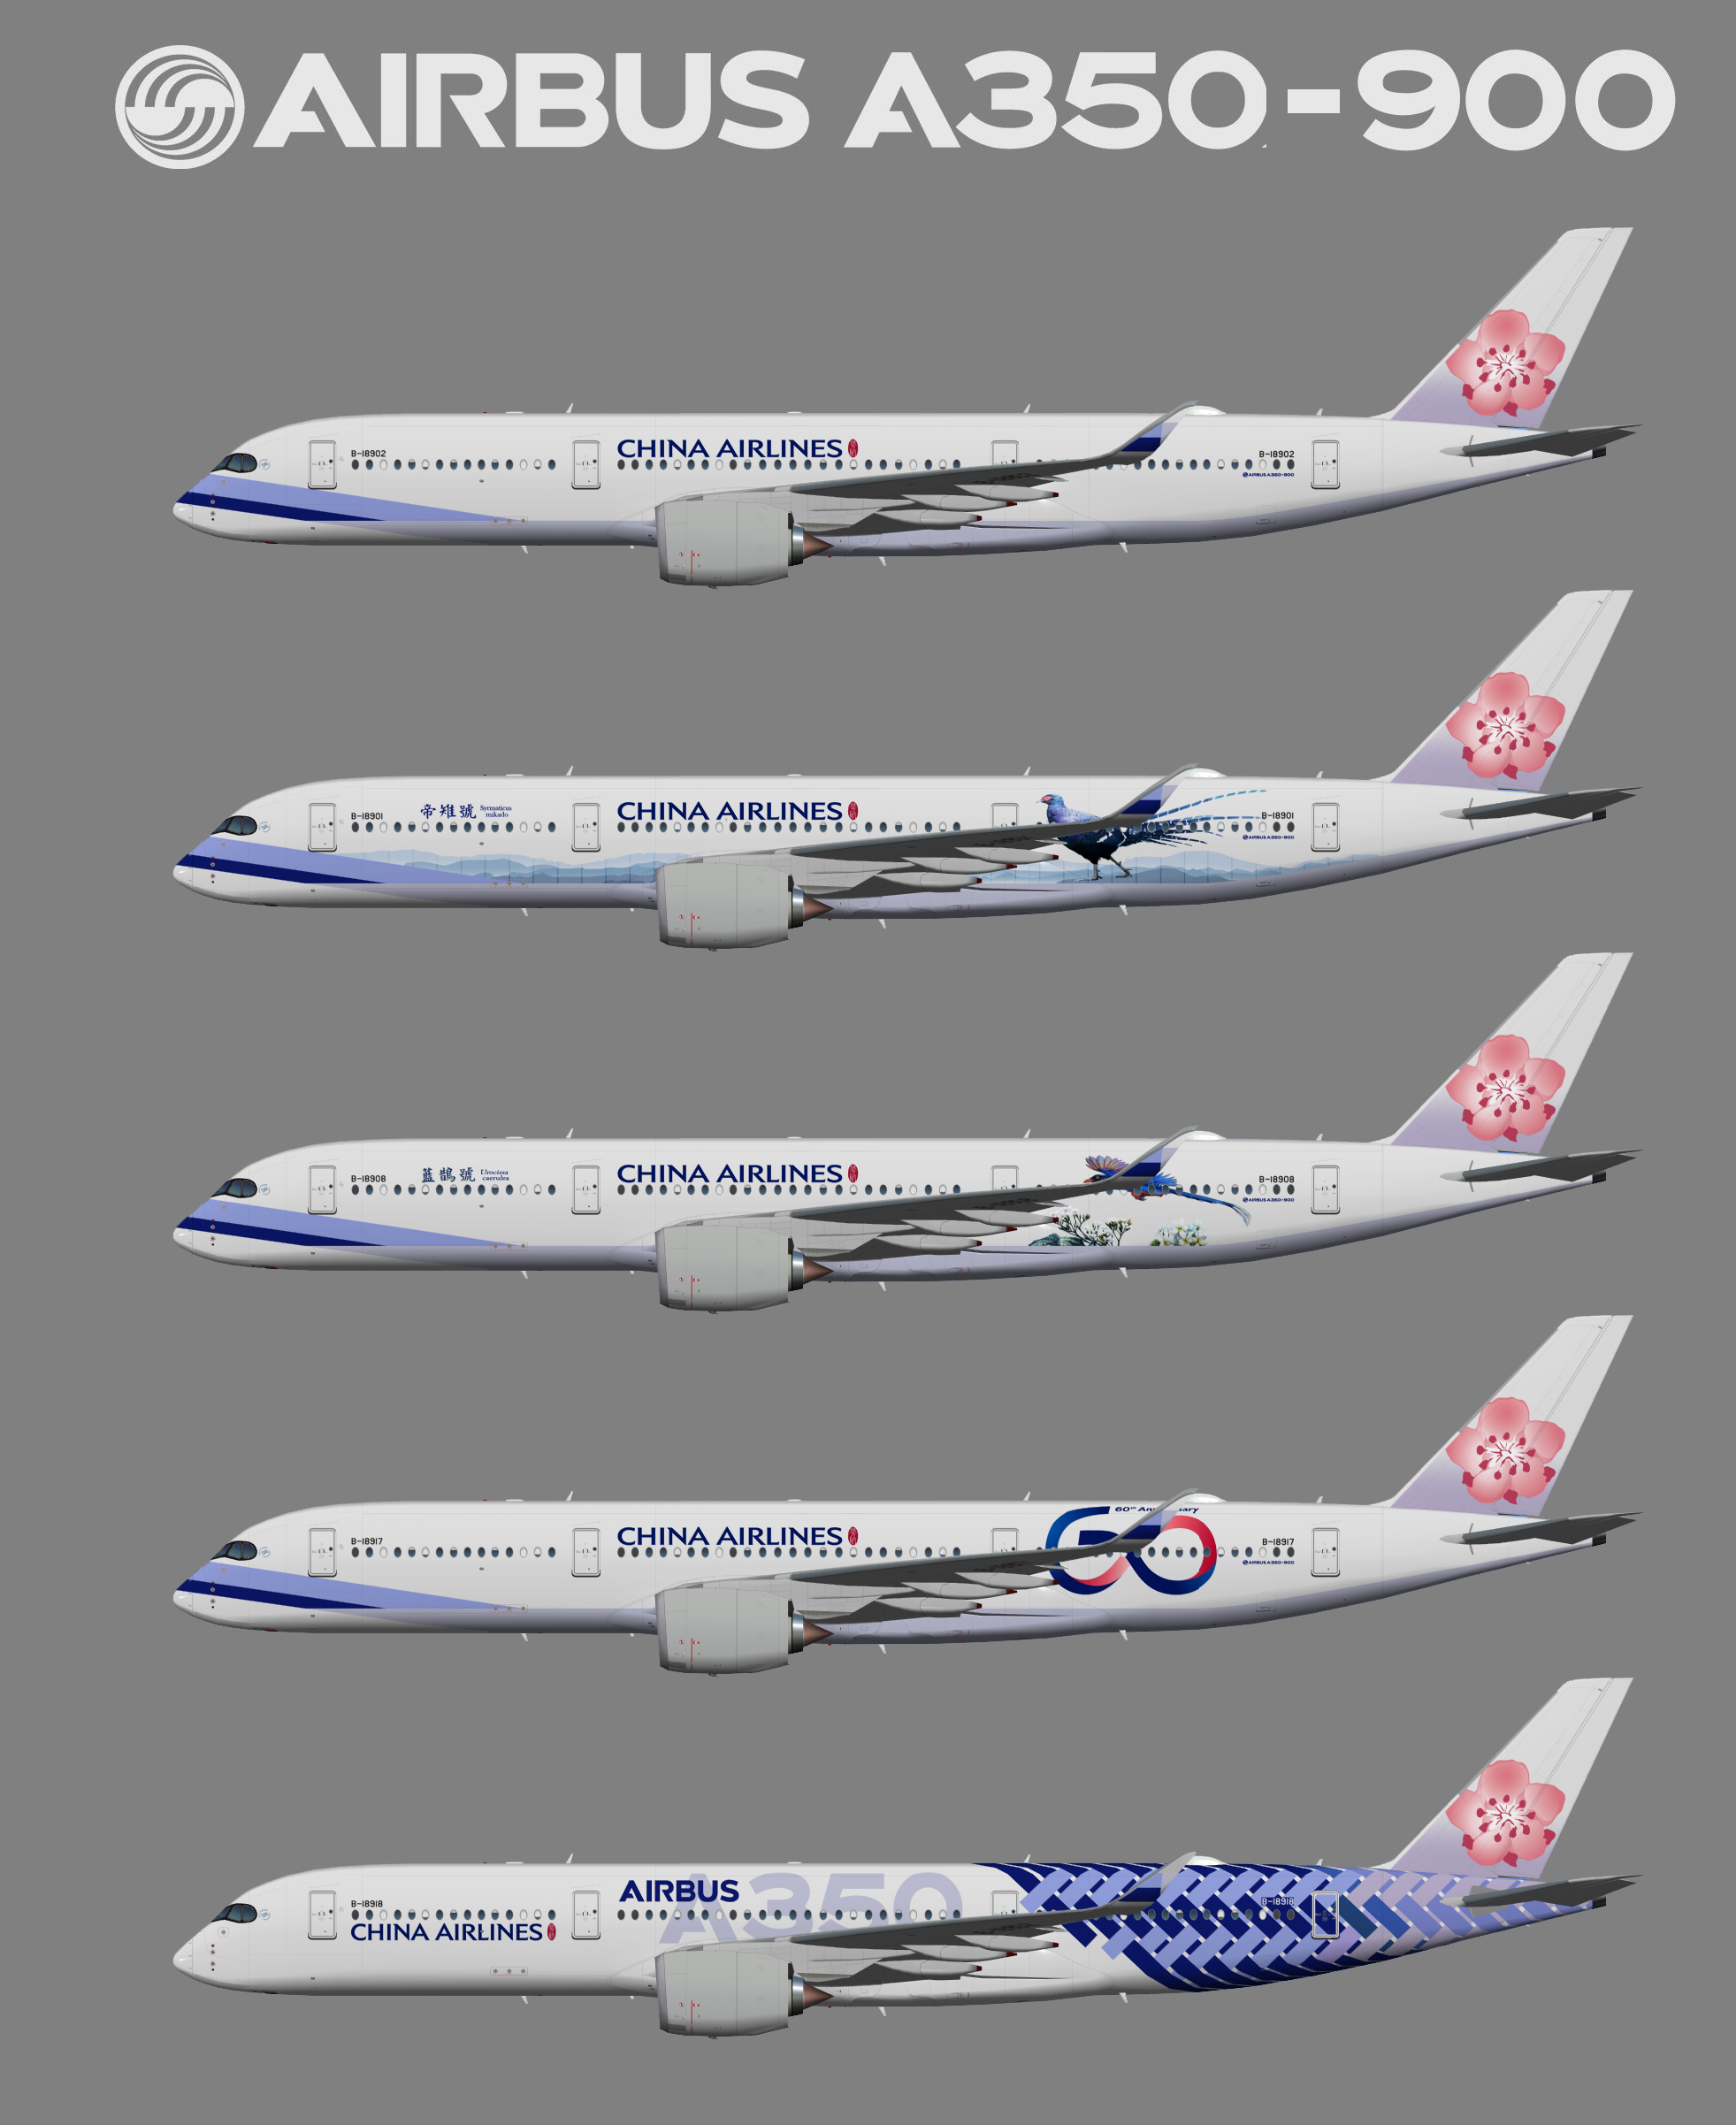 UTT China Airlines Airbus A350-900